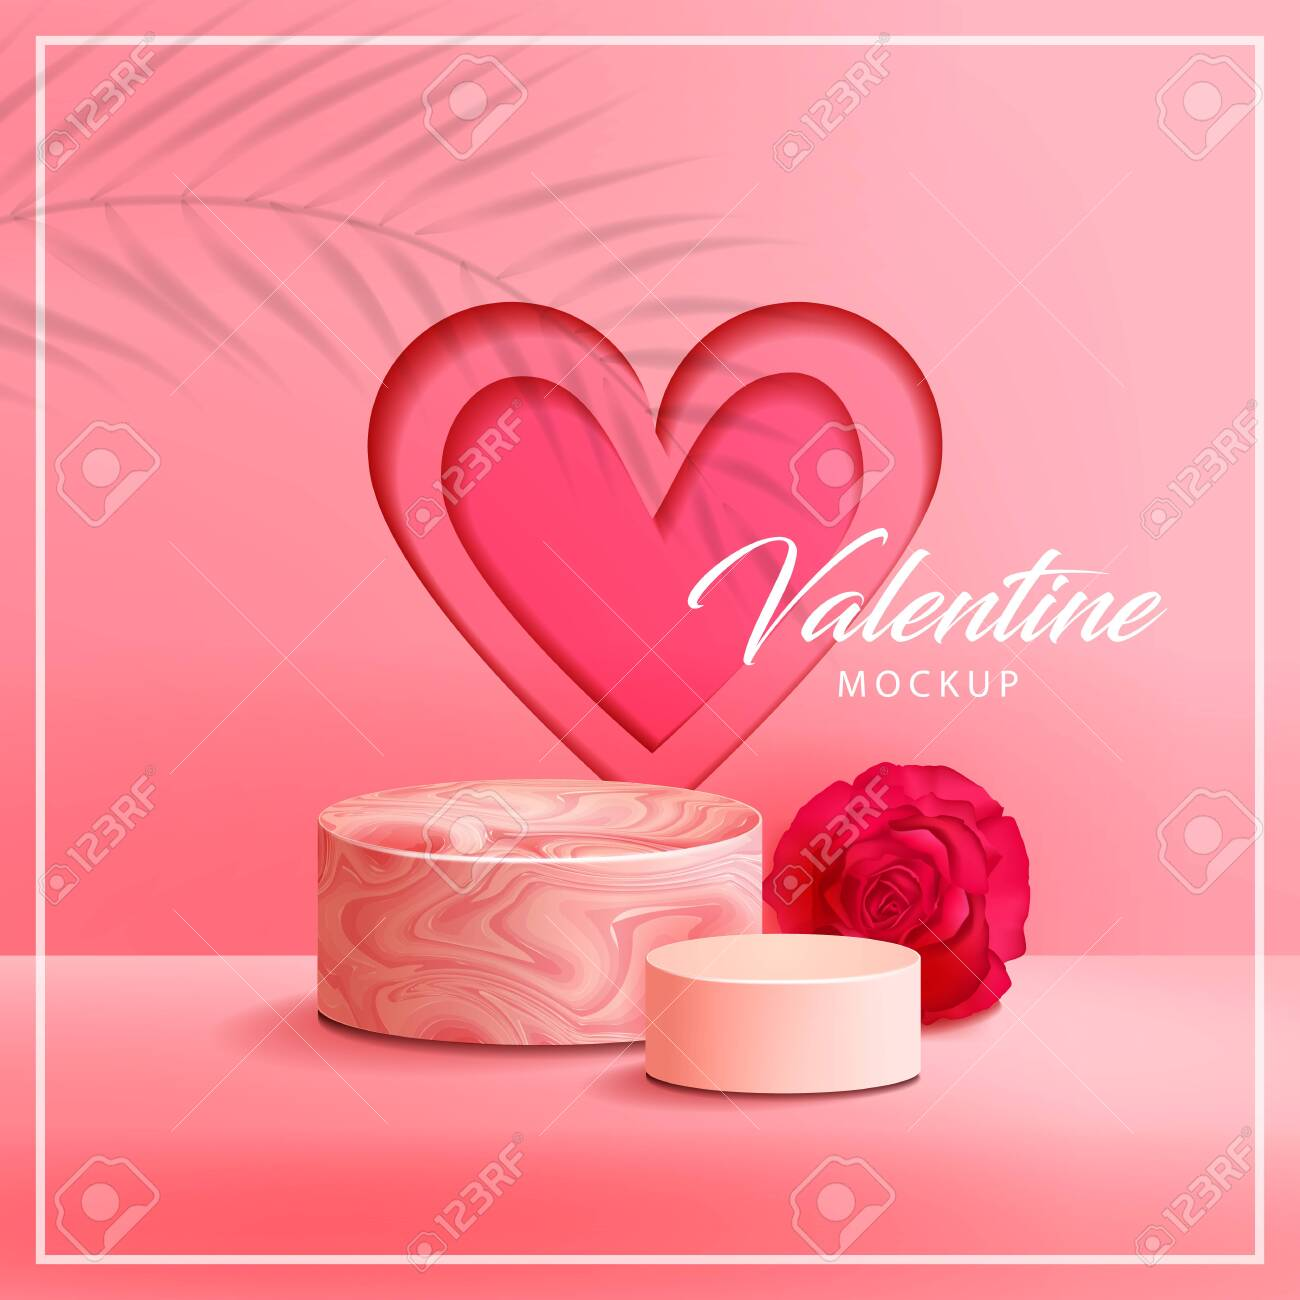 Pink Marble Texture With Round Podium Rose And Heart Background Royalty Free Cliparts Vectors And Stock Illustration Image 140134846